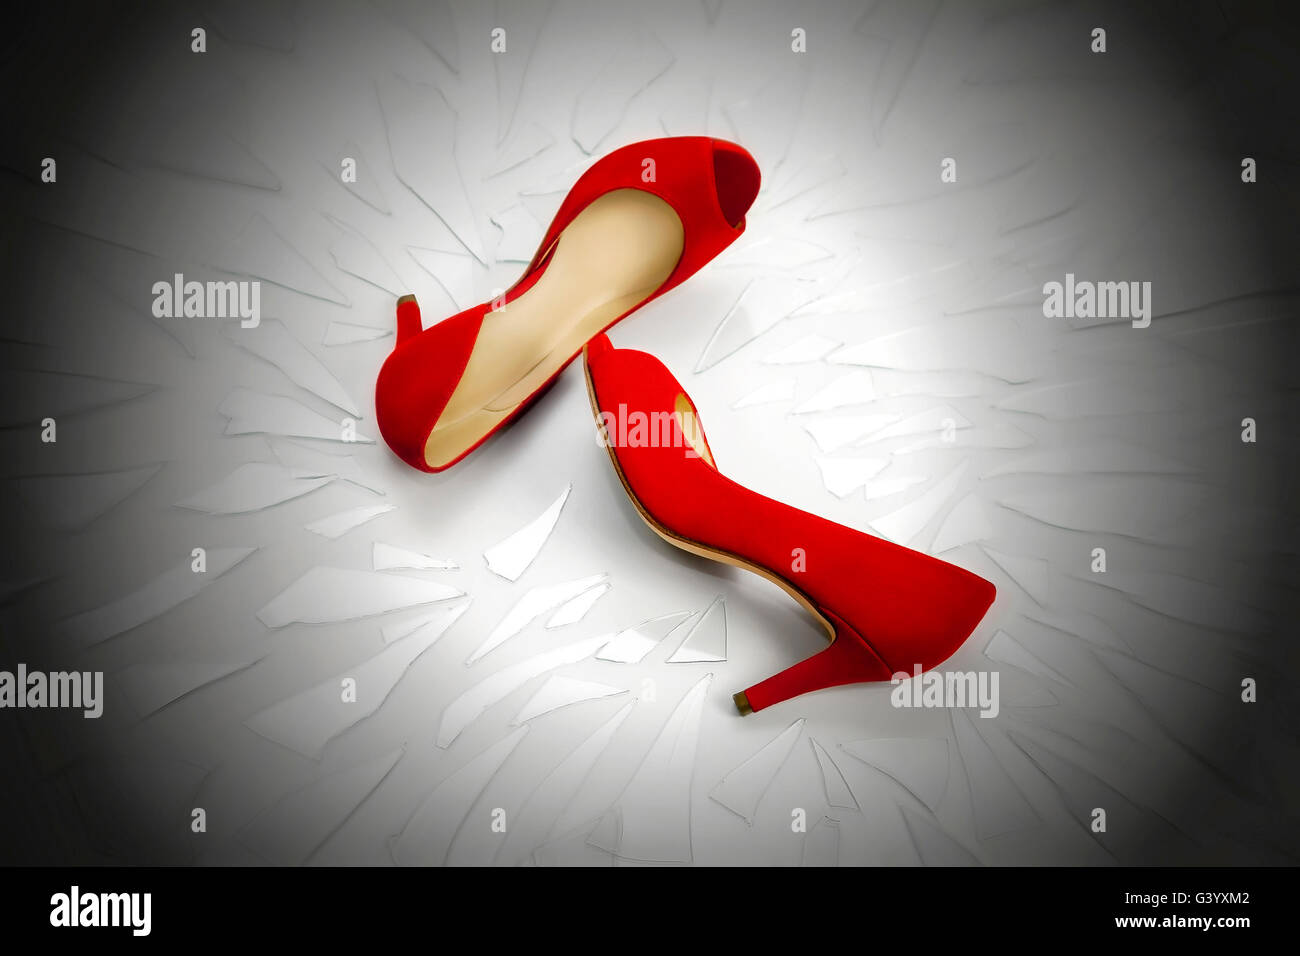 Two women's shoes red, rest on a plan full of broken glass fragments. The image symbolizes the continuing violence - Stock Image